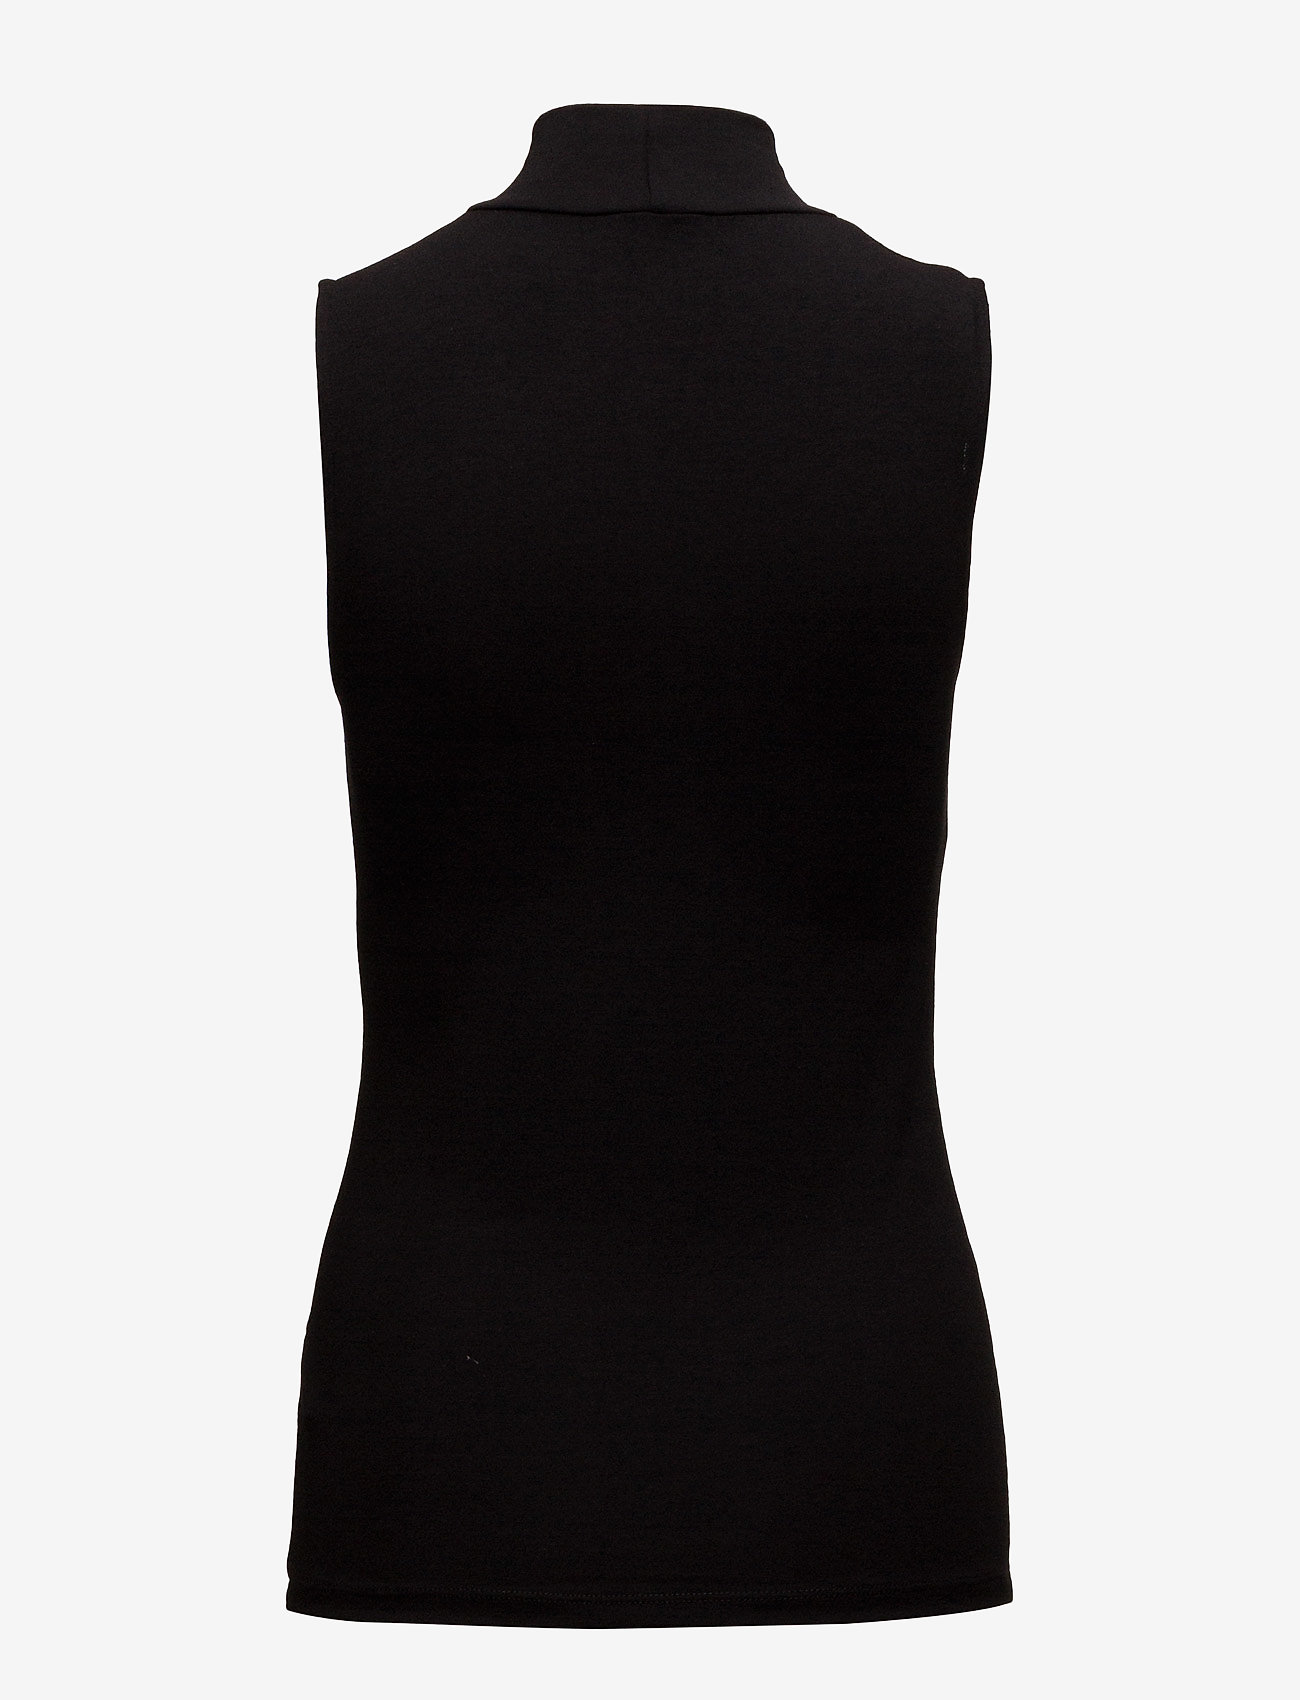 Theo Top (Black) (28.95 €) - Modström CkX0w